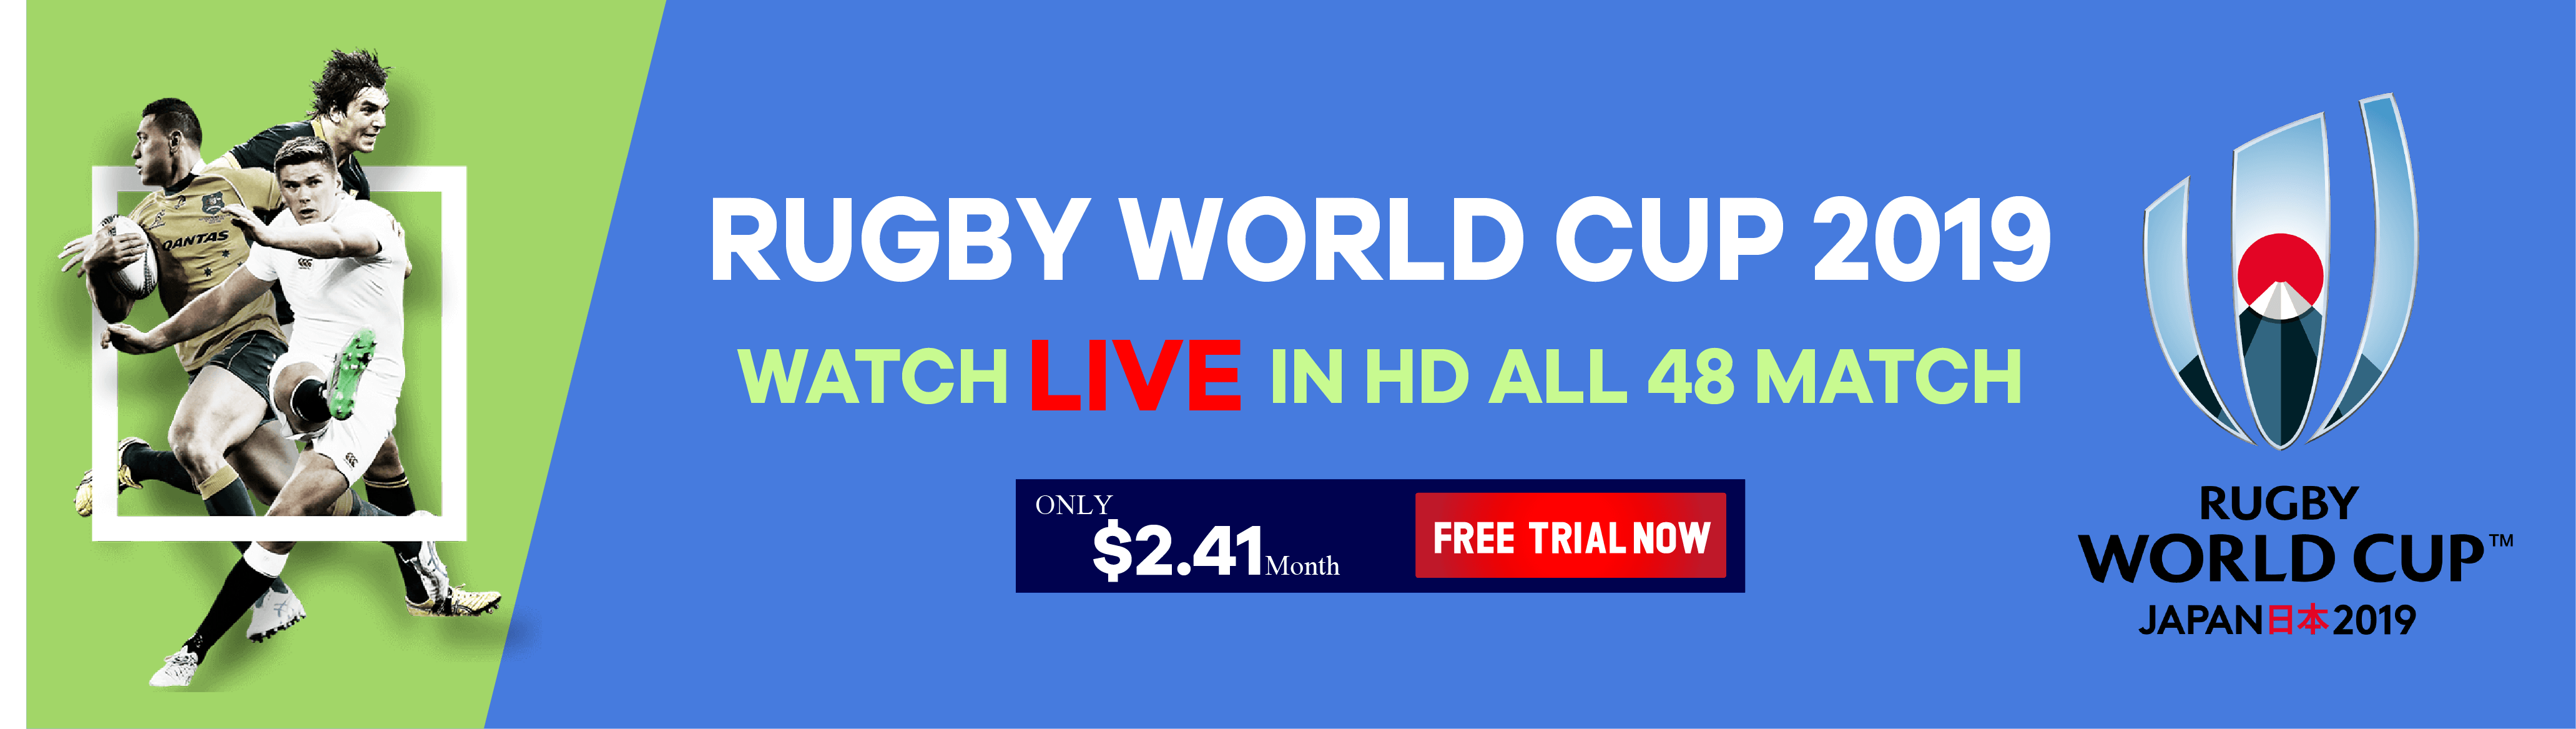 Rugby World Cup 2019 HD Stream